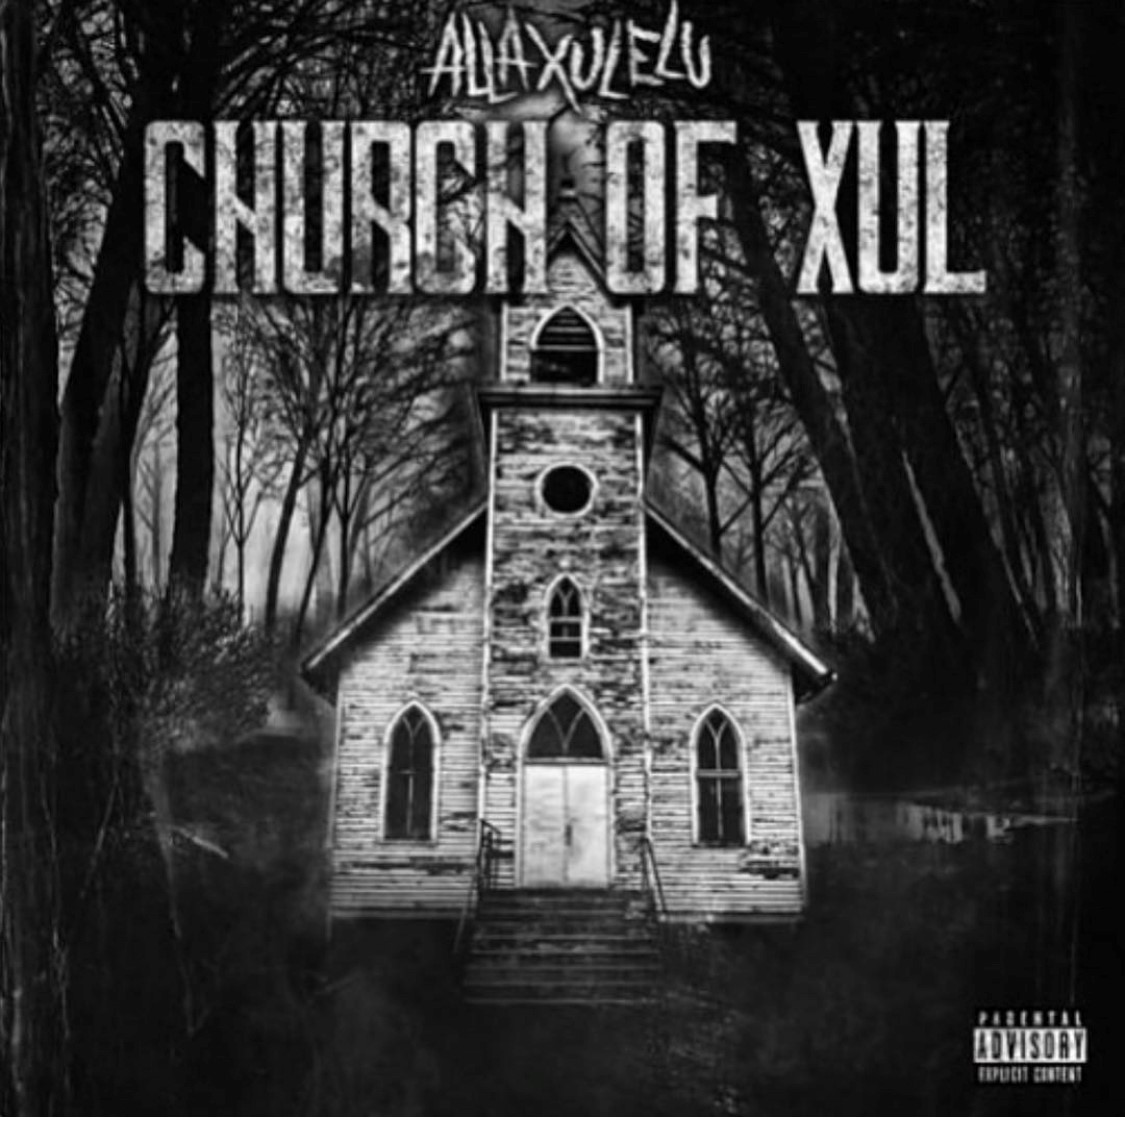 Alla Xul Elu - Church of Xul CD